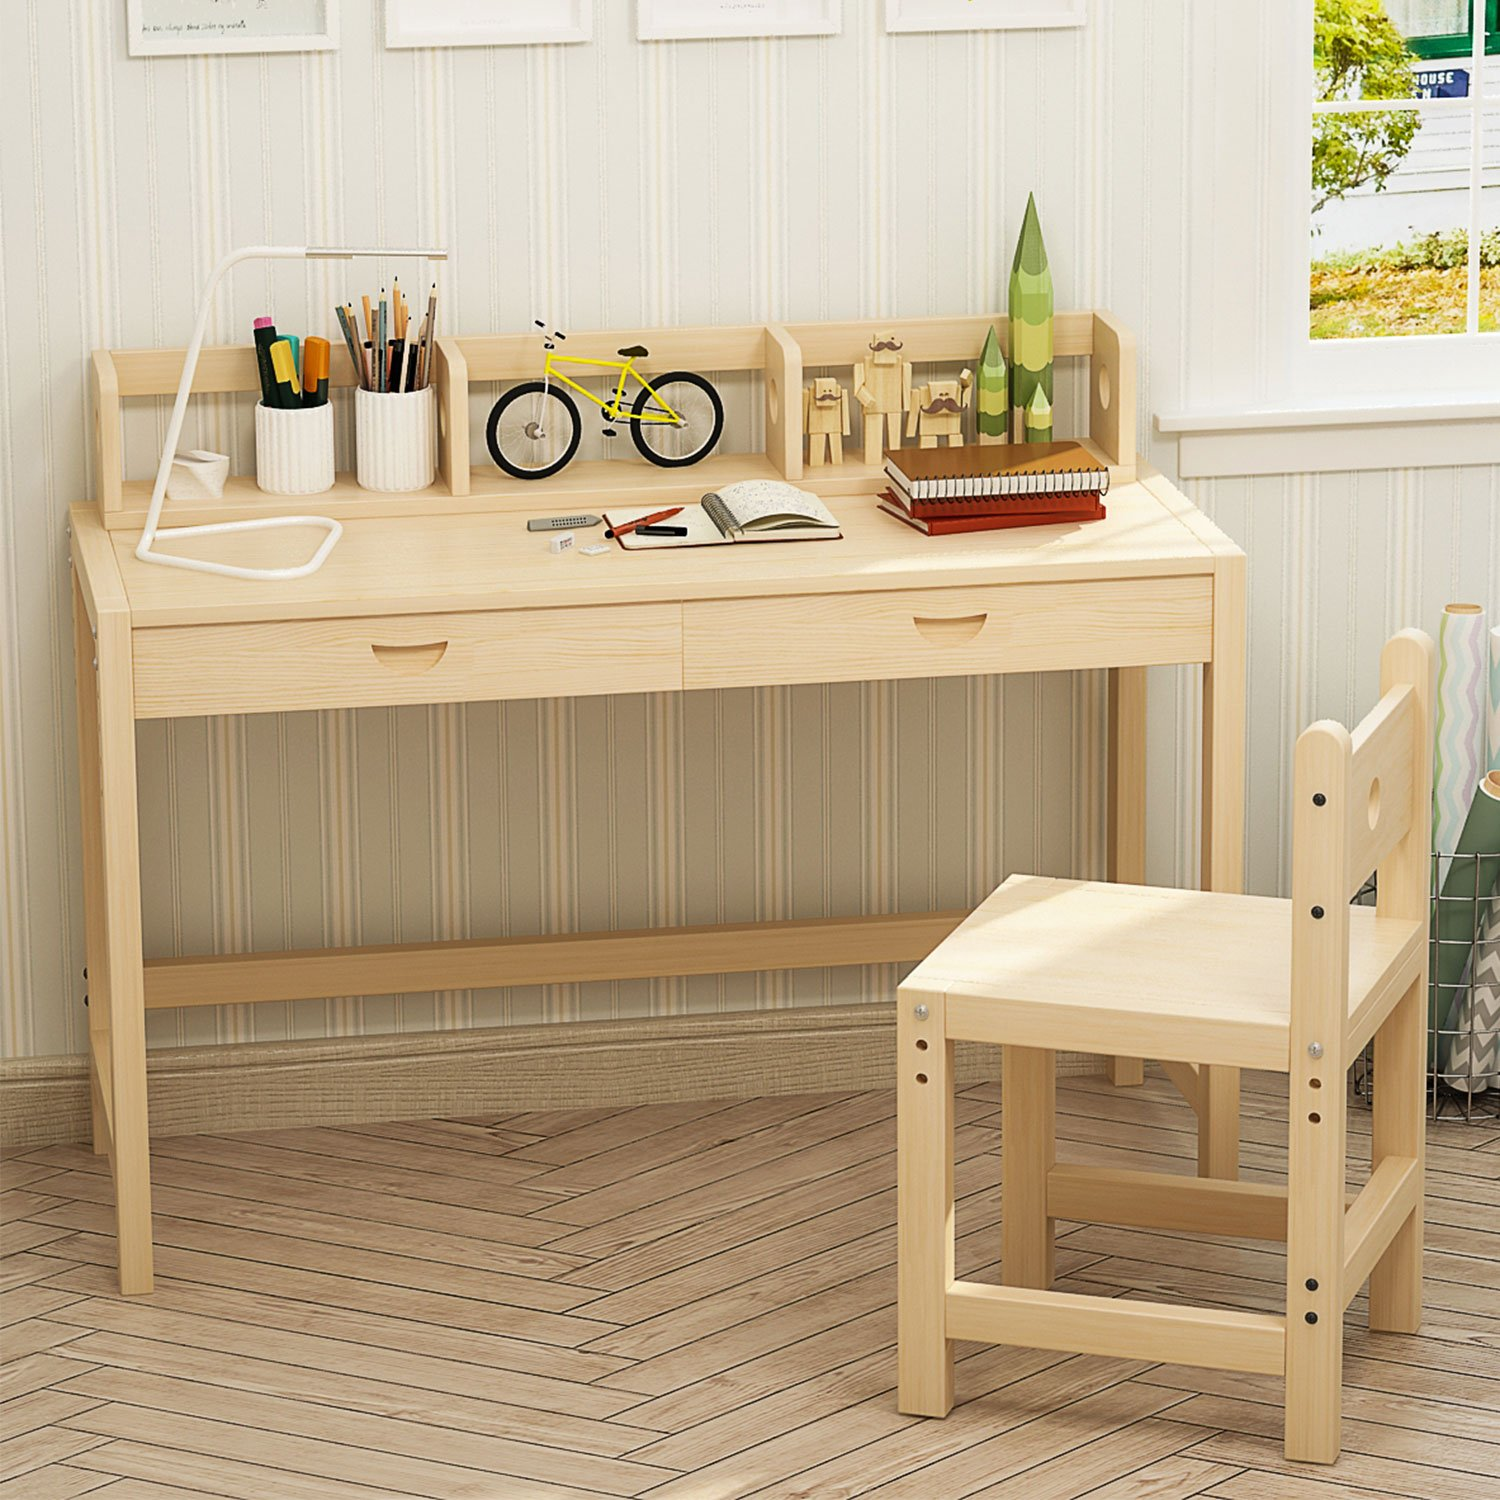 Amazon.com: Tribesigns Unfinished Kids Study Desk and Chair Set